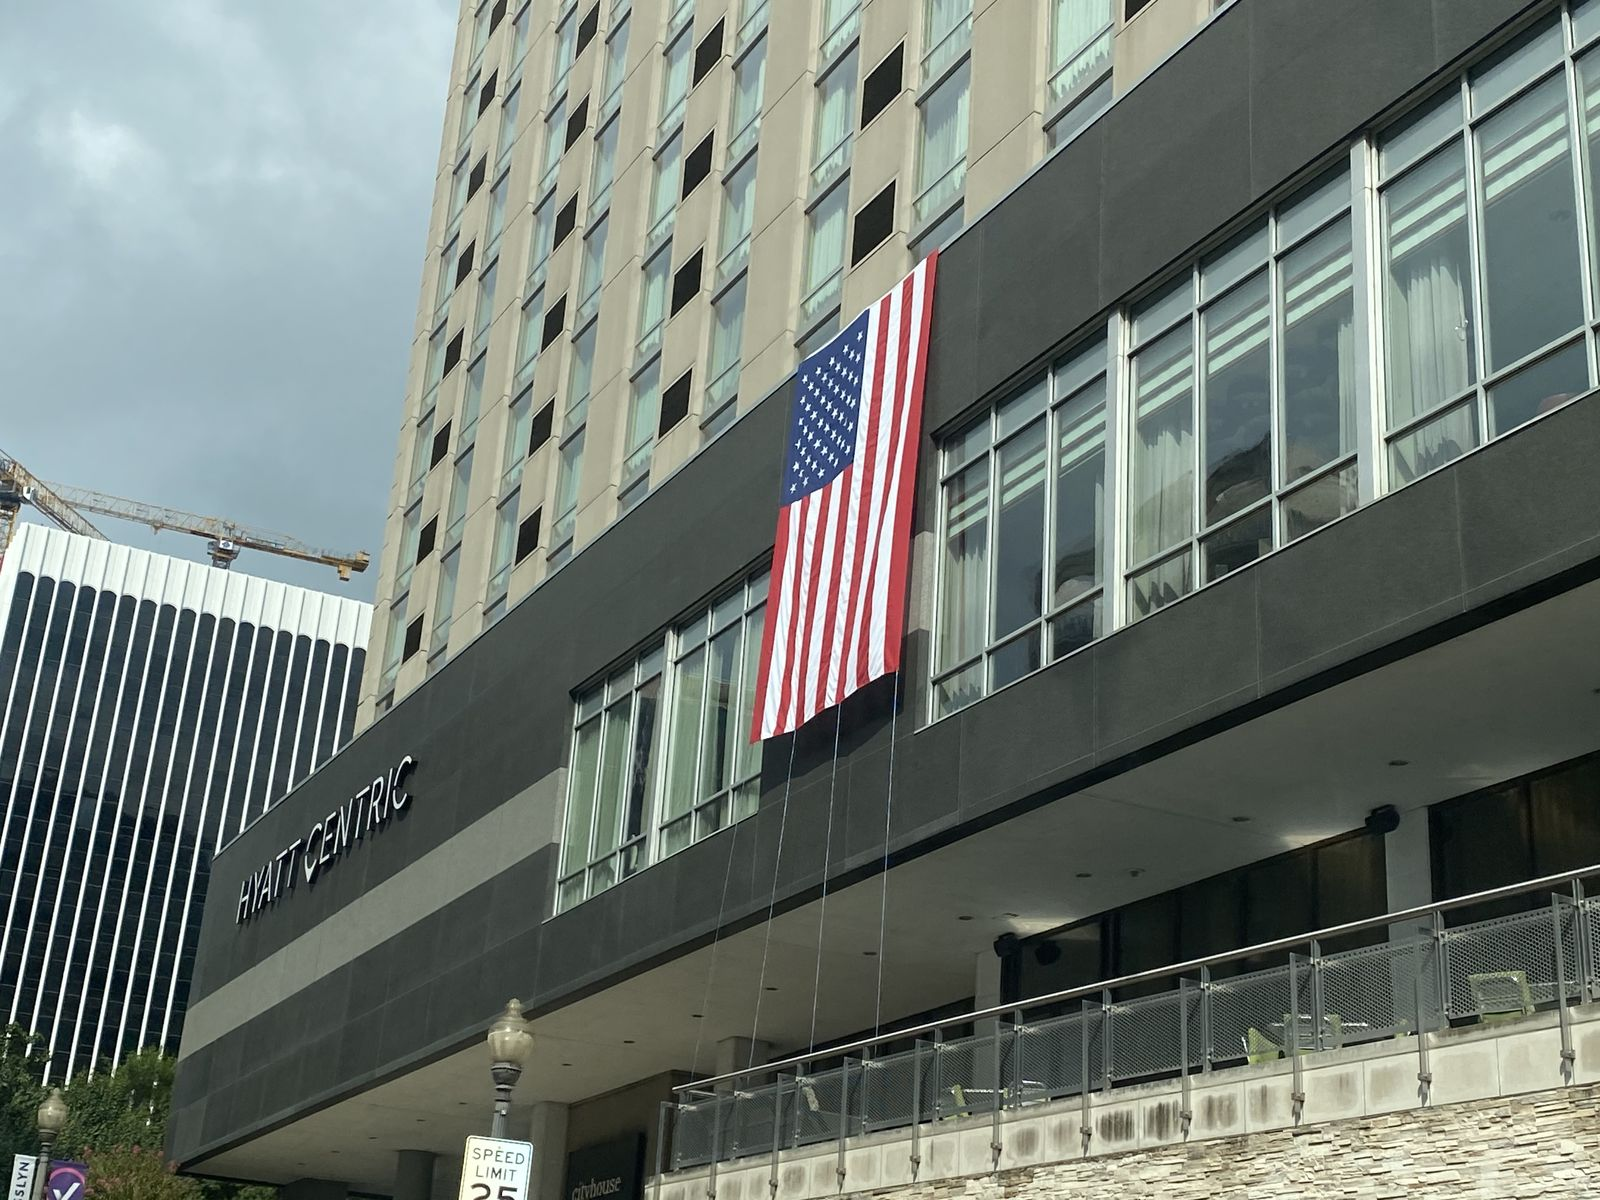 25 American flags are draped over skyrise buildings in Arlington's Rosslyn neighborhood. A tribute to mark the anniversary of 9/11. (ABC7)